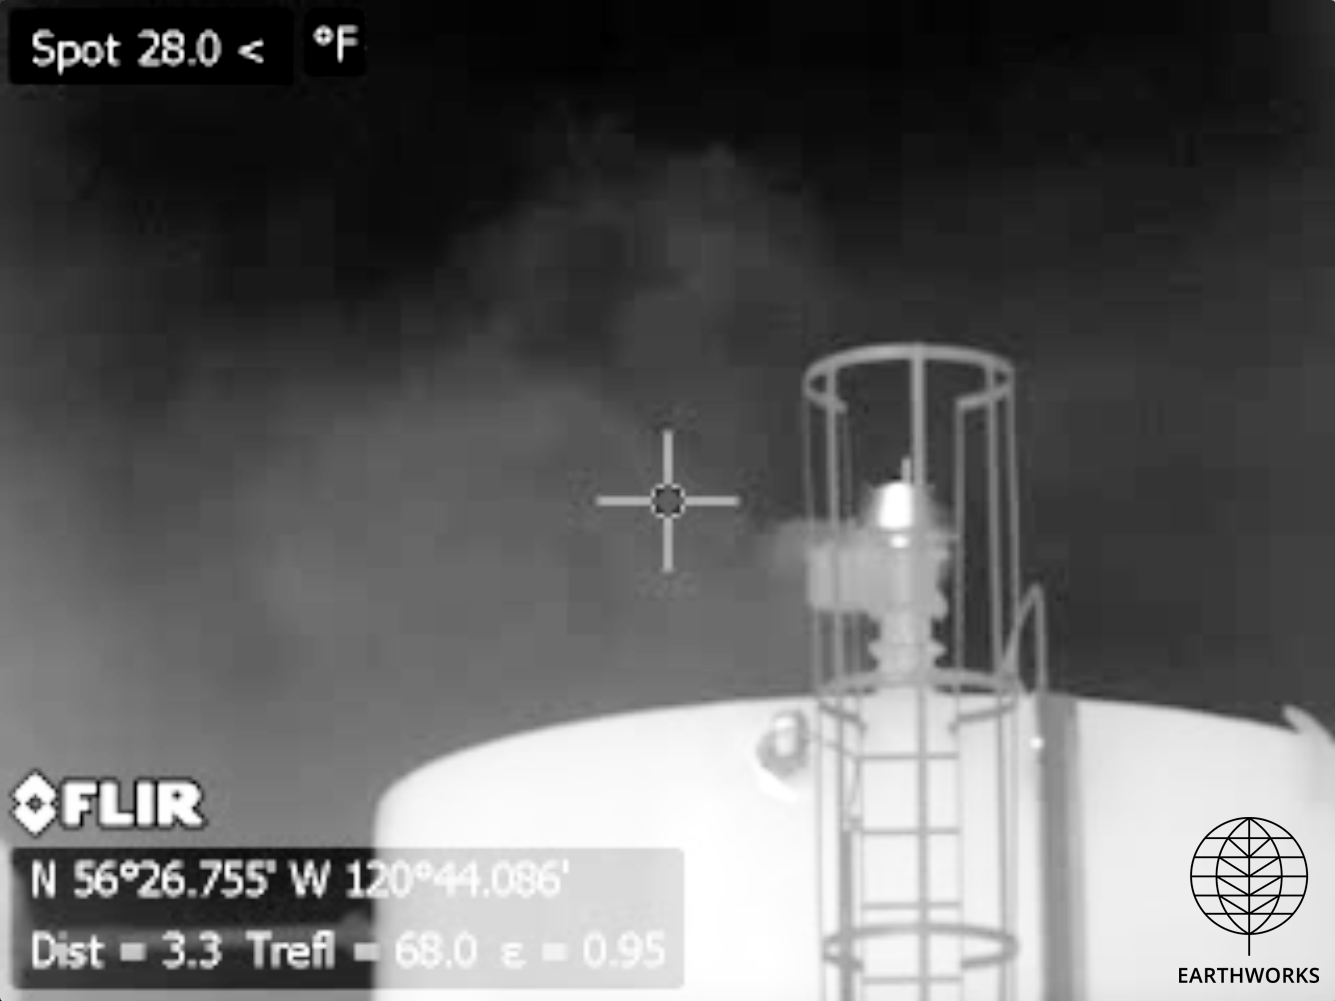 * An optical gas imaging camera shows a methane leak at a gas facility in northeastern B.C. Image: Earthworks